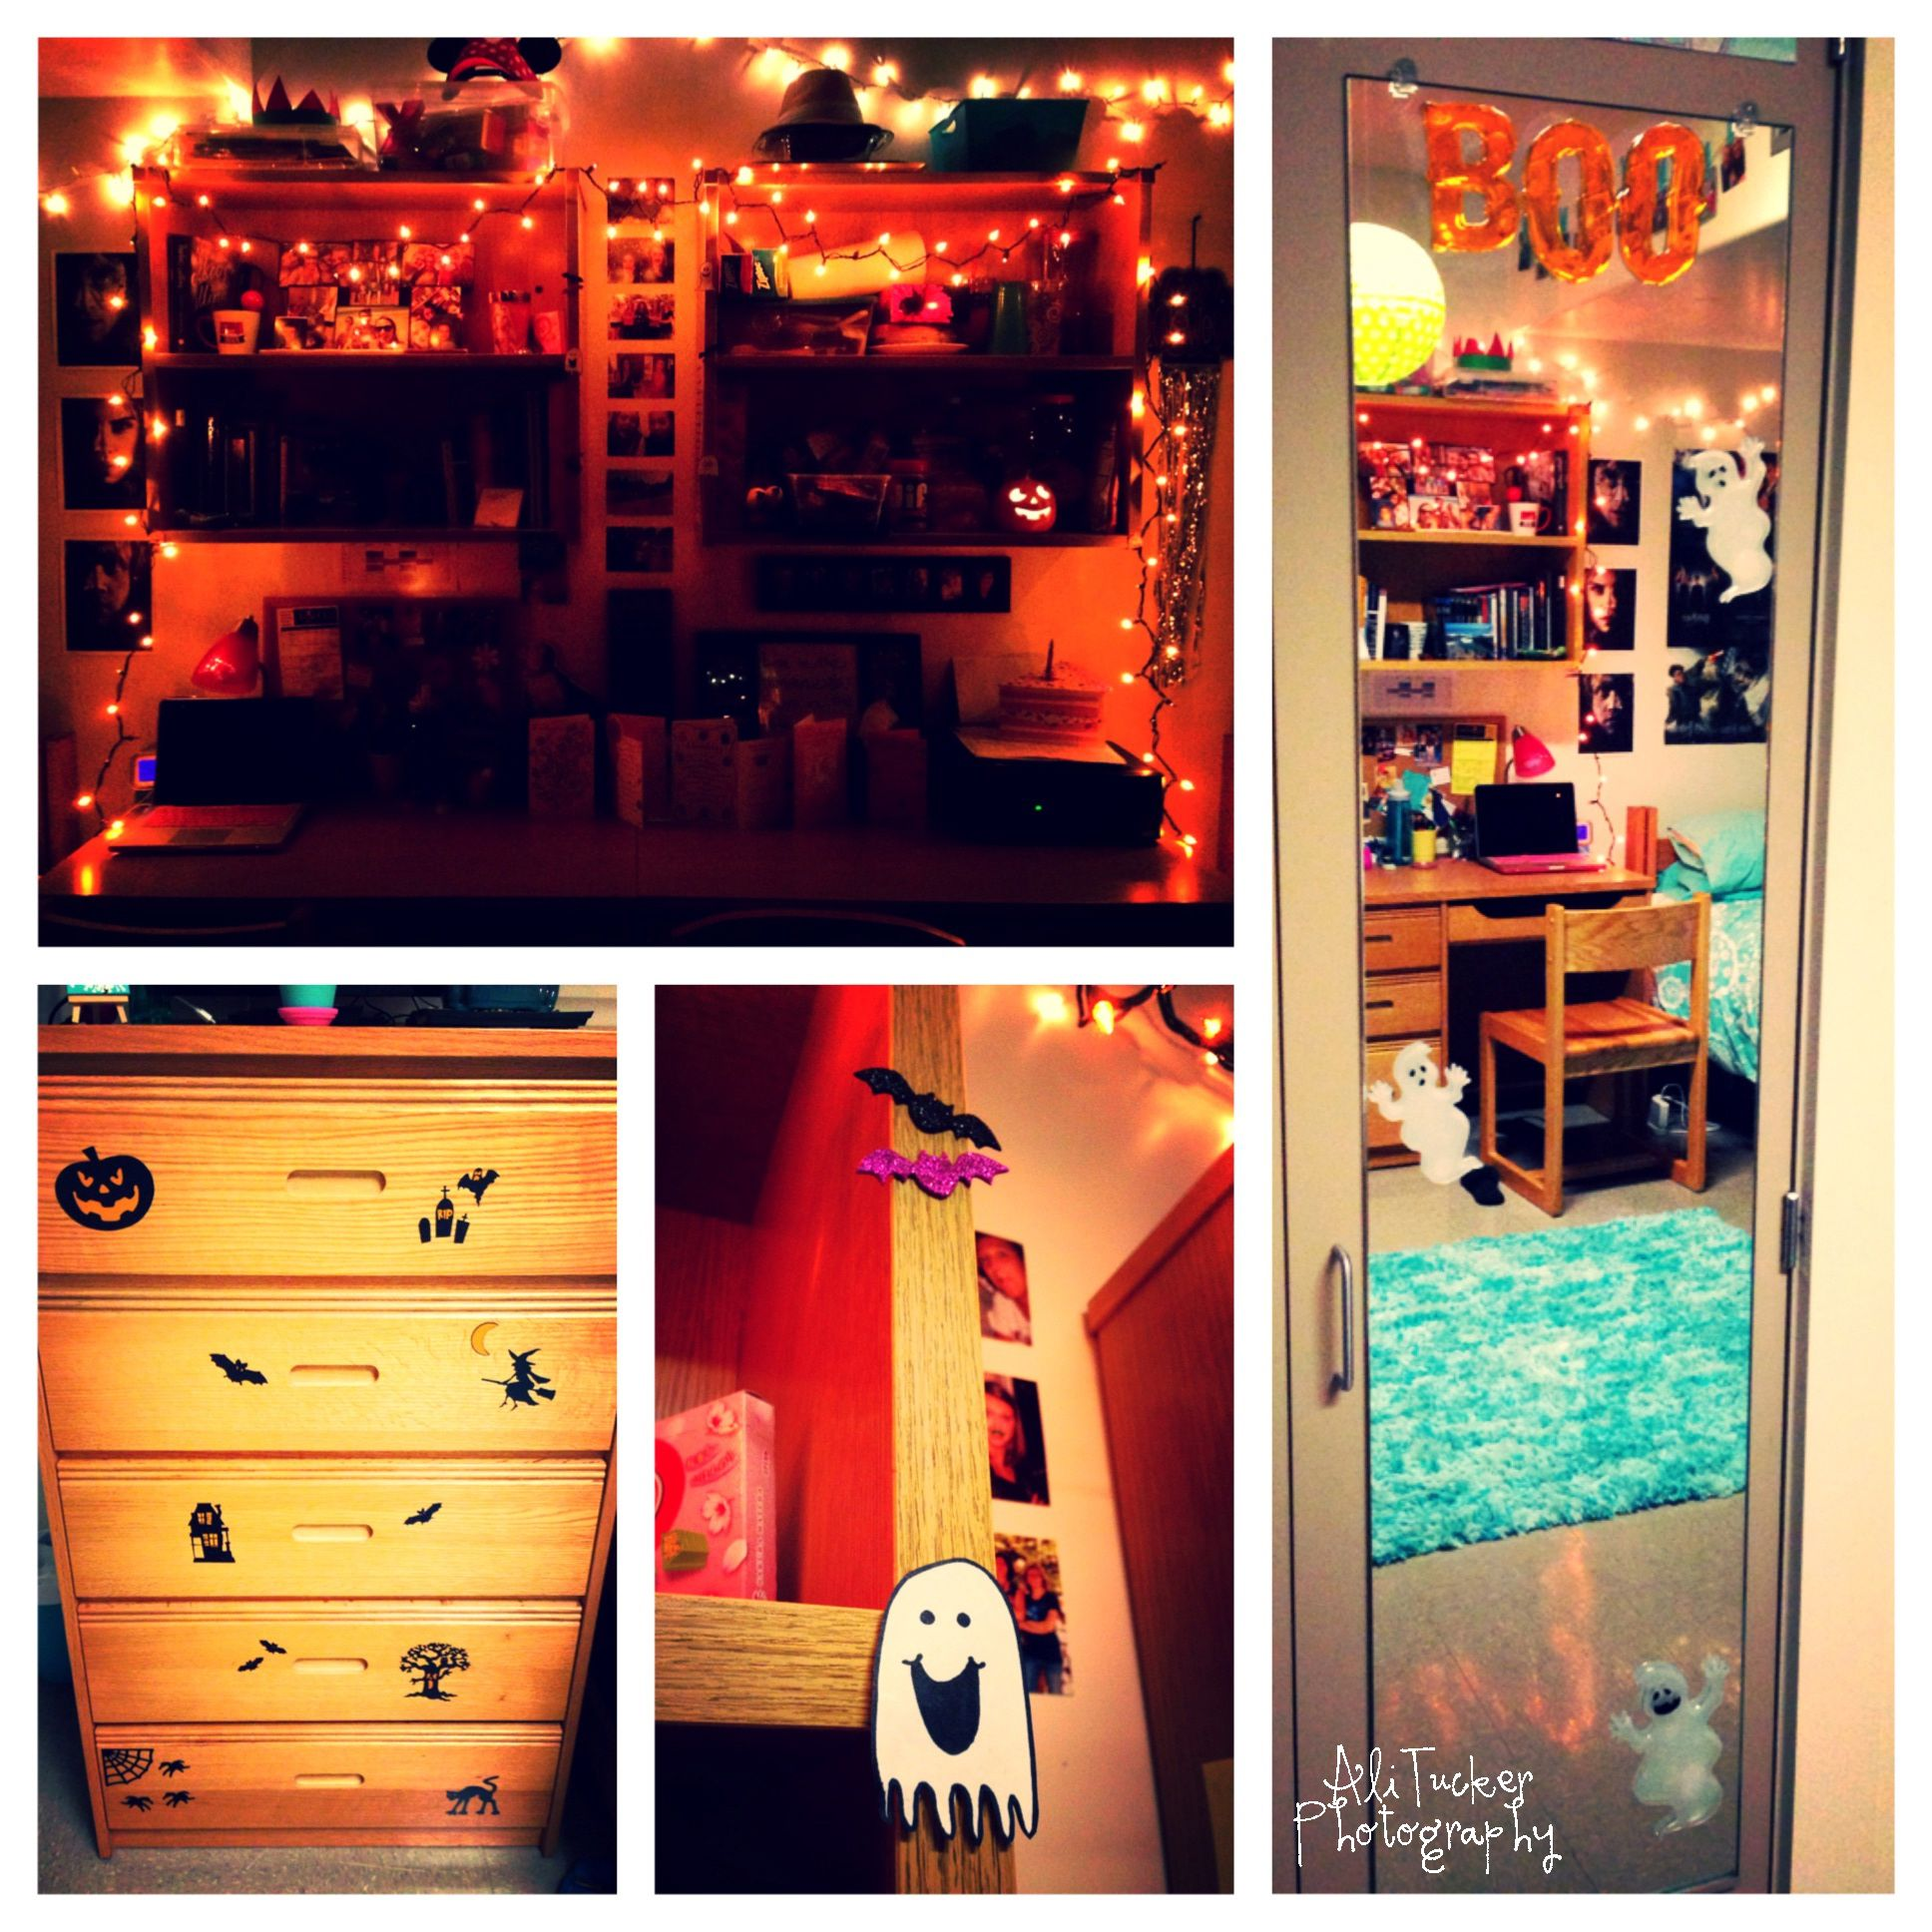 How To Decorate A Dorm Room For Halloween 1 Twinkle Lights